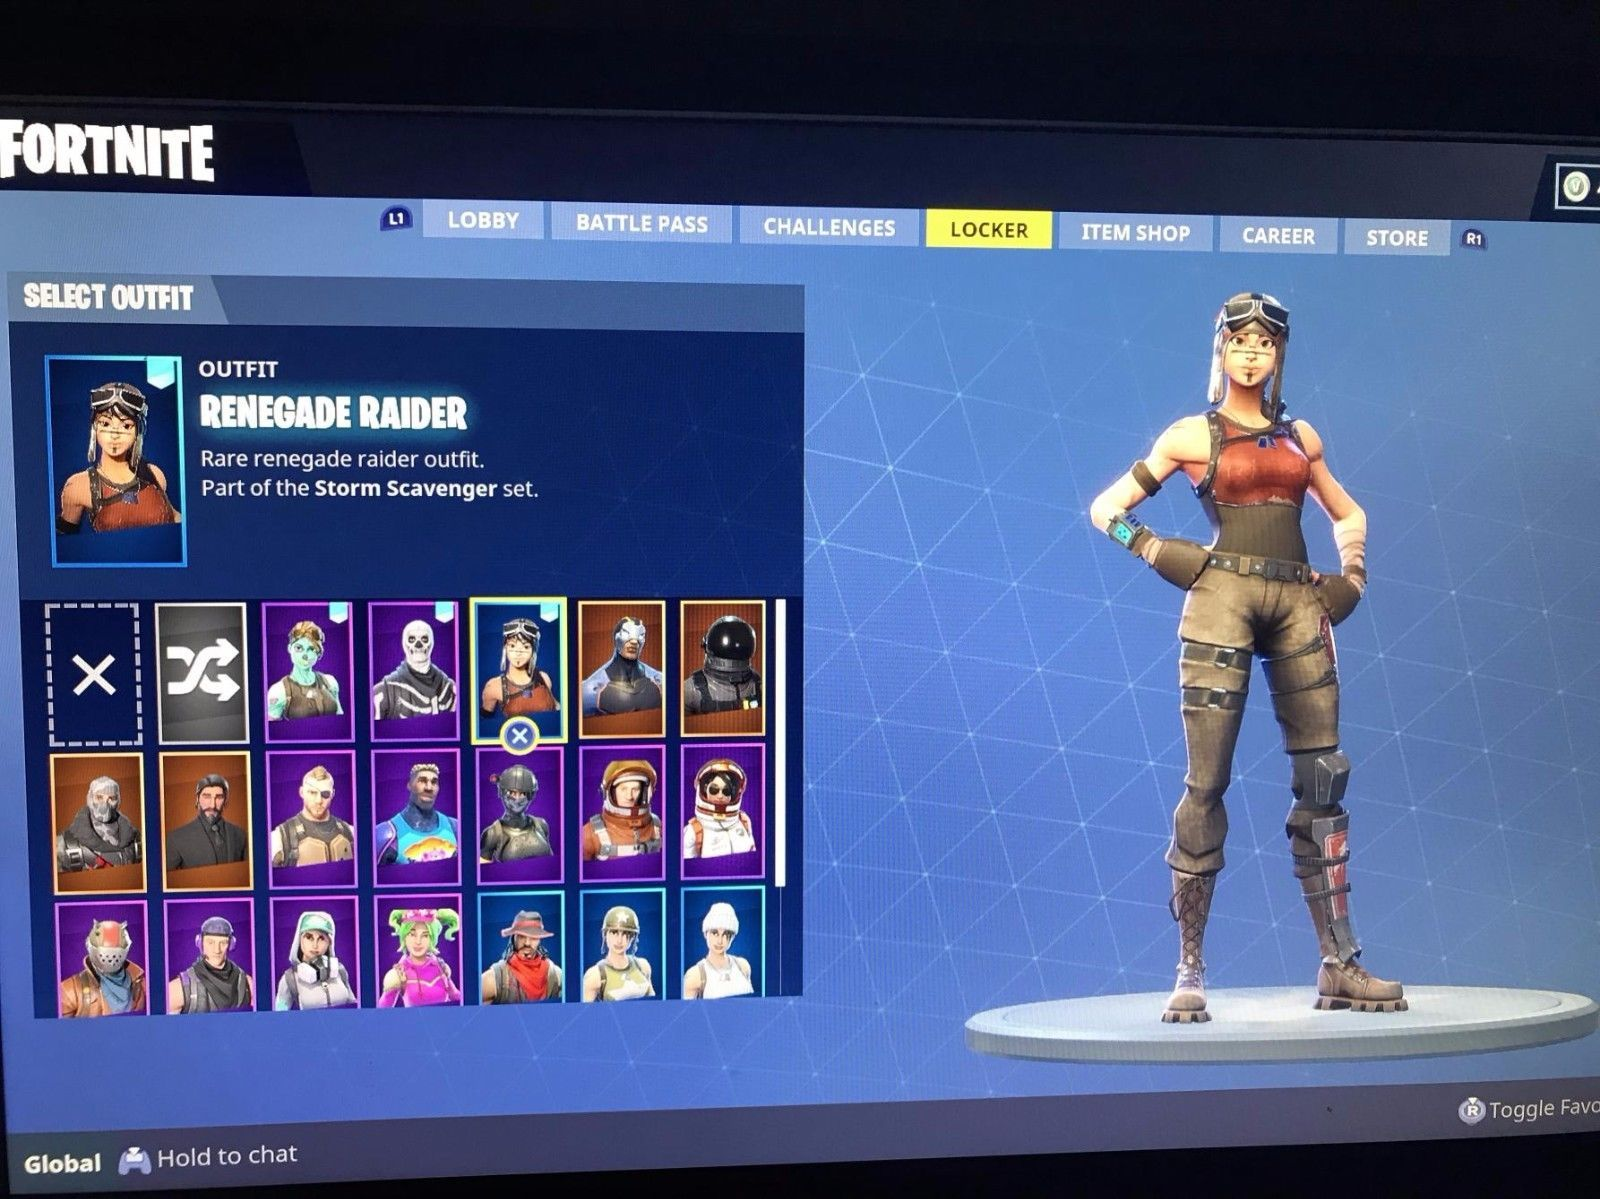 how to connect my ps4 account to my fortnite account